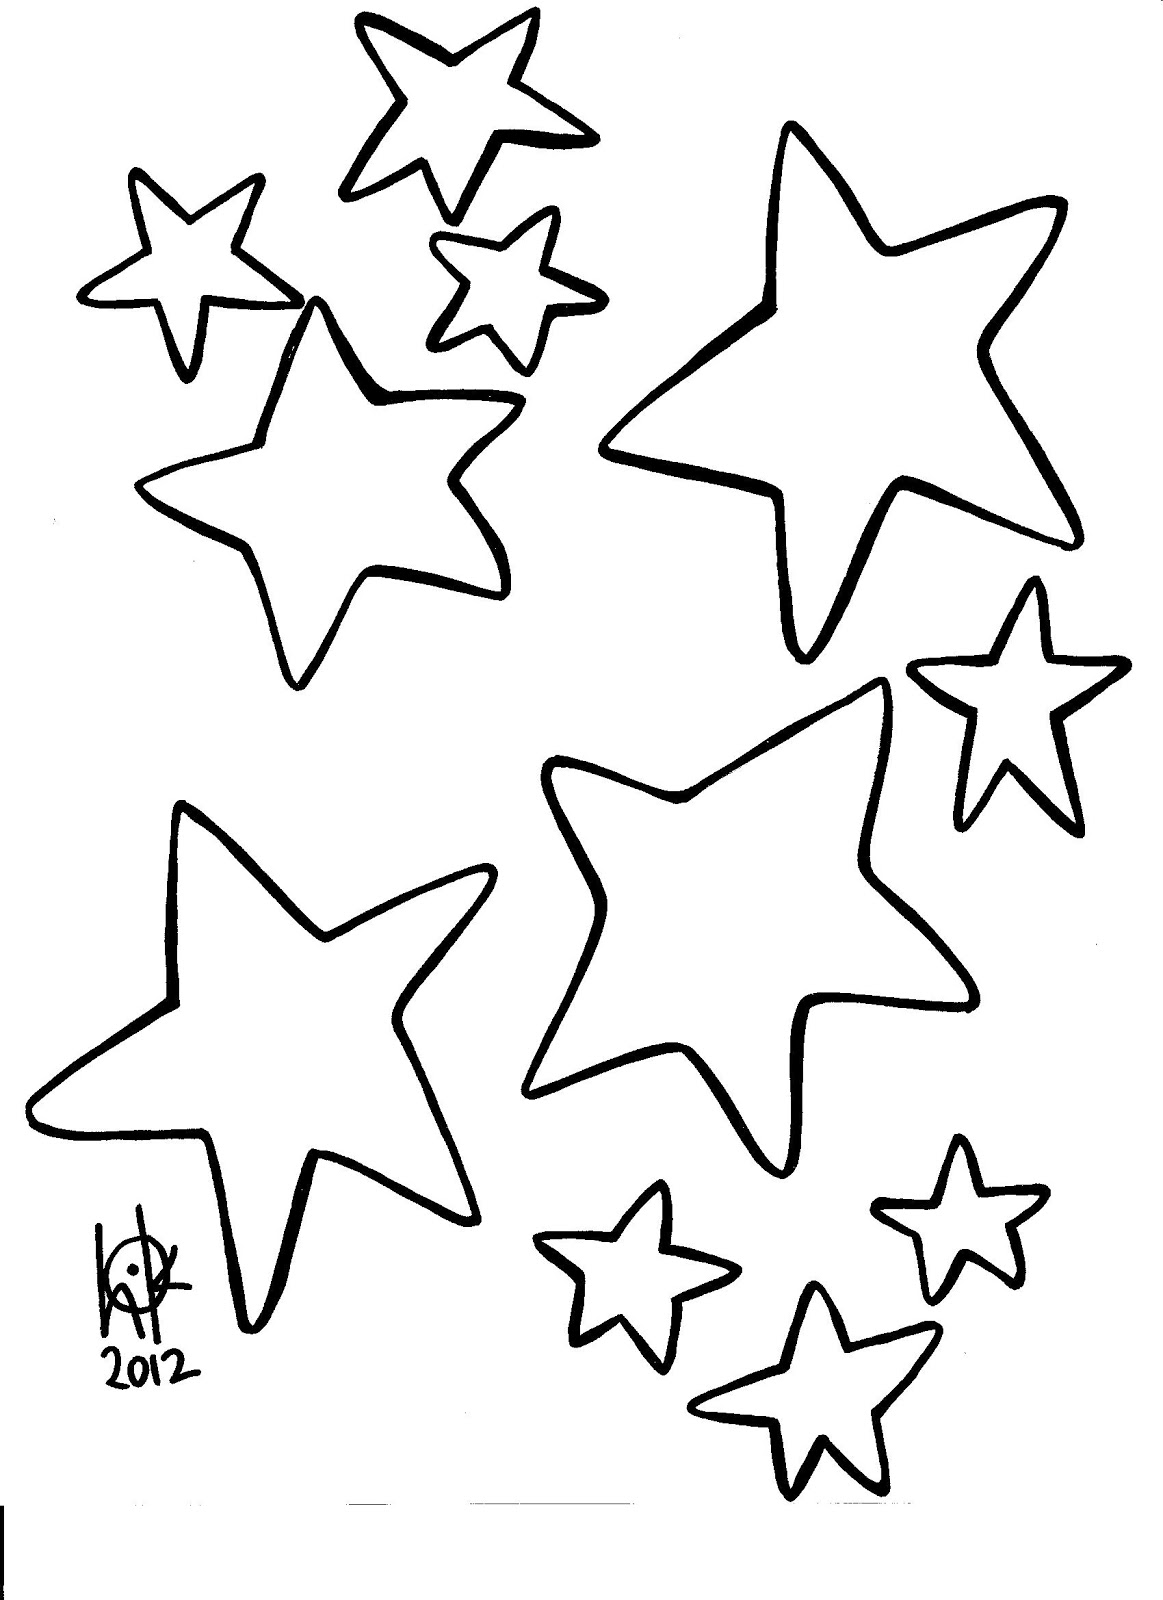 heart and star coloring pages | Coloring Printable Images Gallery Category Page 28 ...